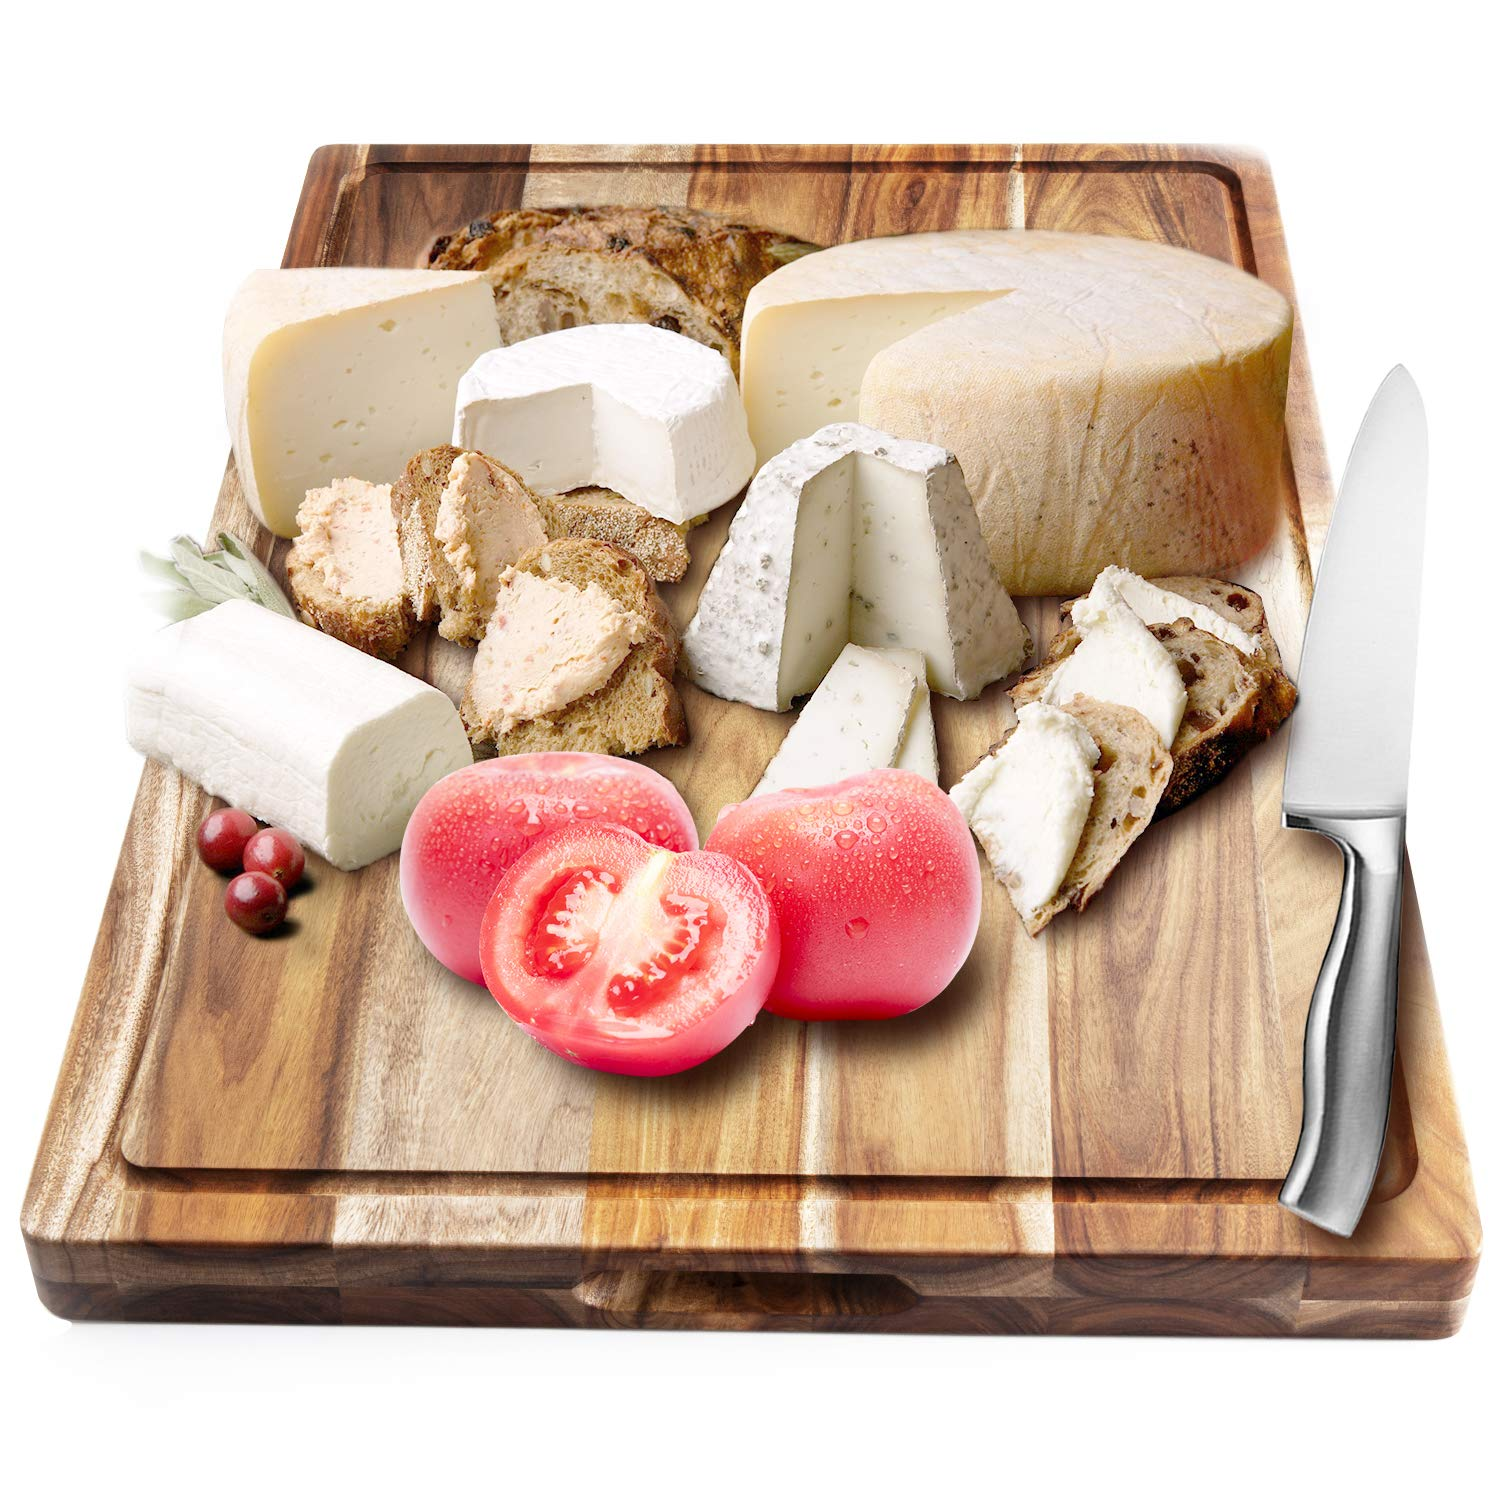 AIJAI Natural Wood Cutting Board, 24'x17.9'x1.5' Large Multipurpose Thick Acacia Wood Chopping Board for Kitchen Serving Tray for Vegetables, Fruit, Meat, Fish & Cheese| Reversible Butcher Block